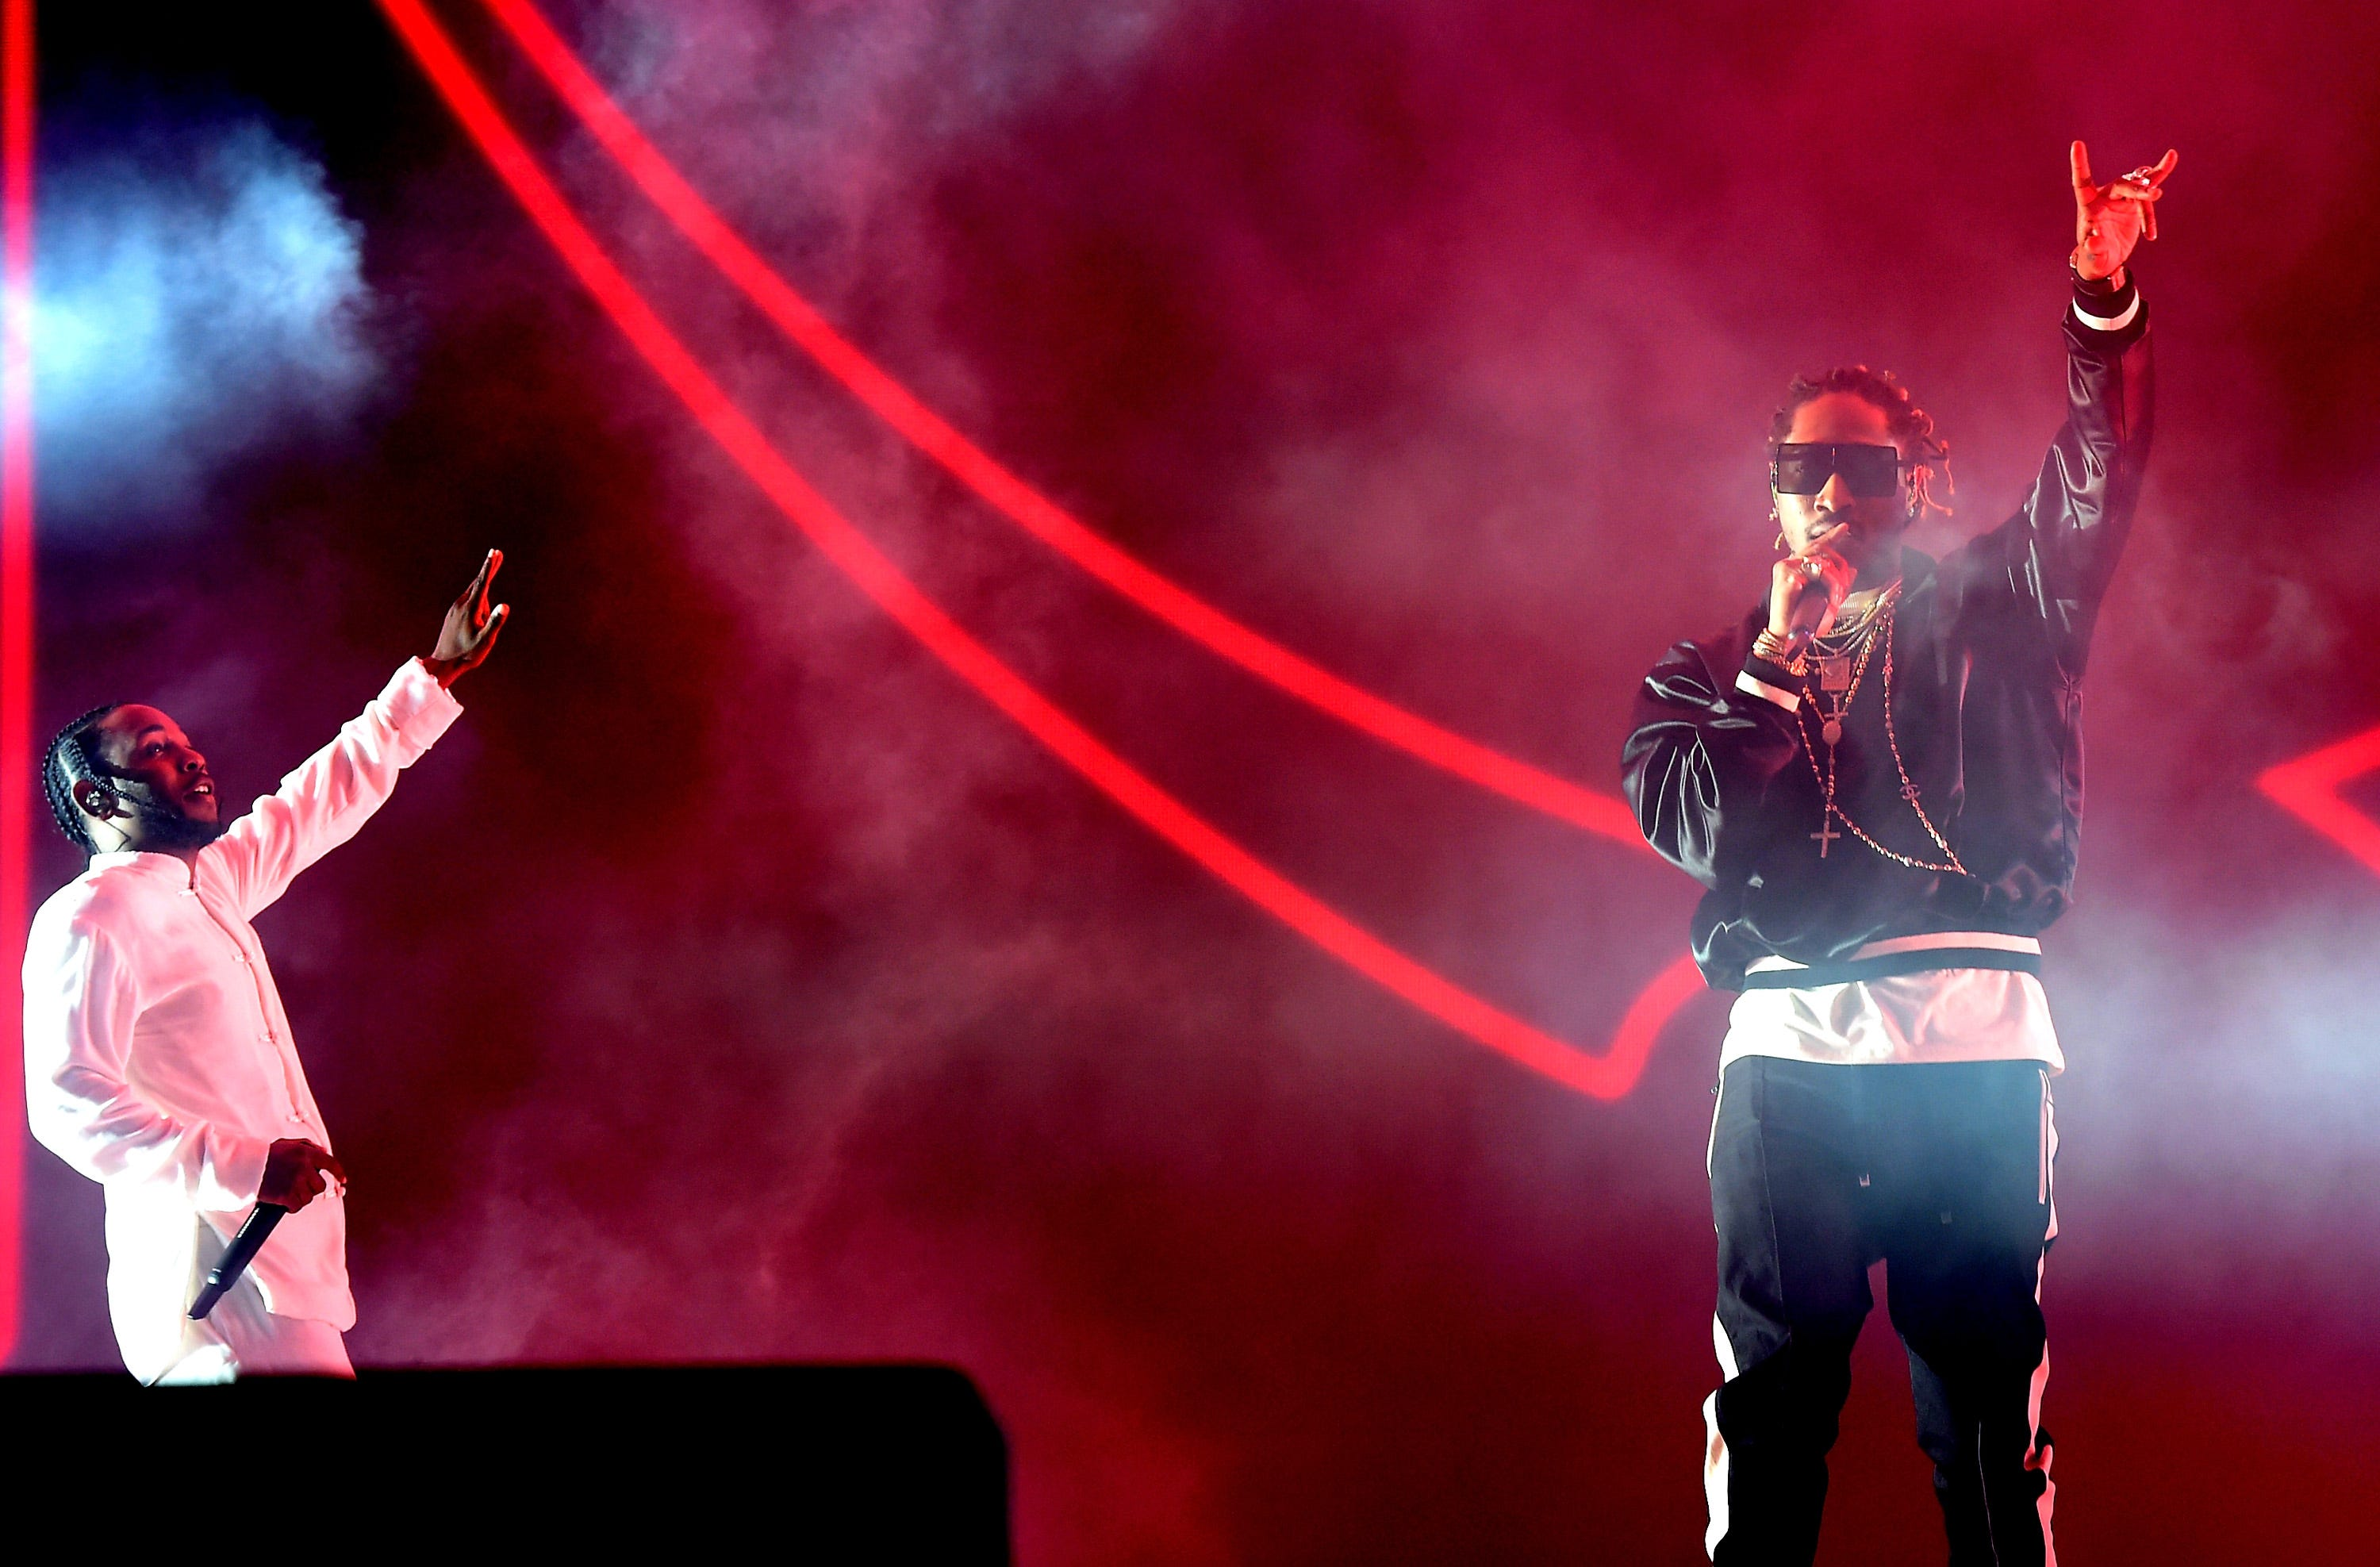 Kendrick Lamar (left) And Future Perform On The Coachella Stage During Day  3 Of The Coachella Valley Music And Arts Festival April 16, 2017 In Indio,  ...